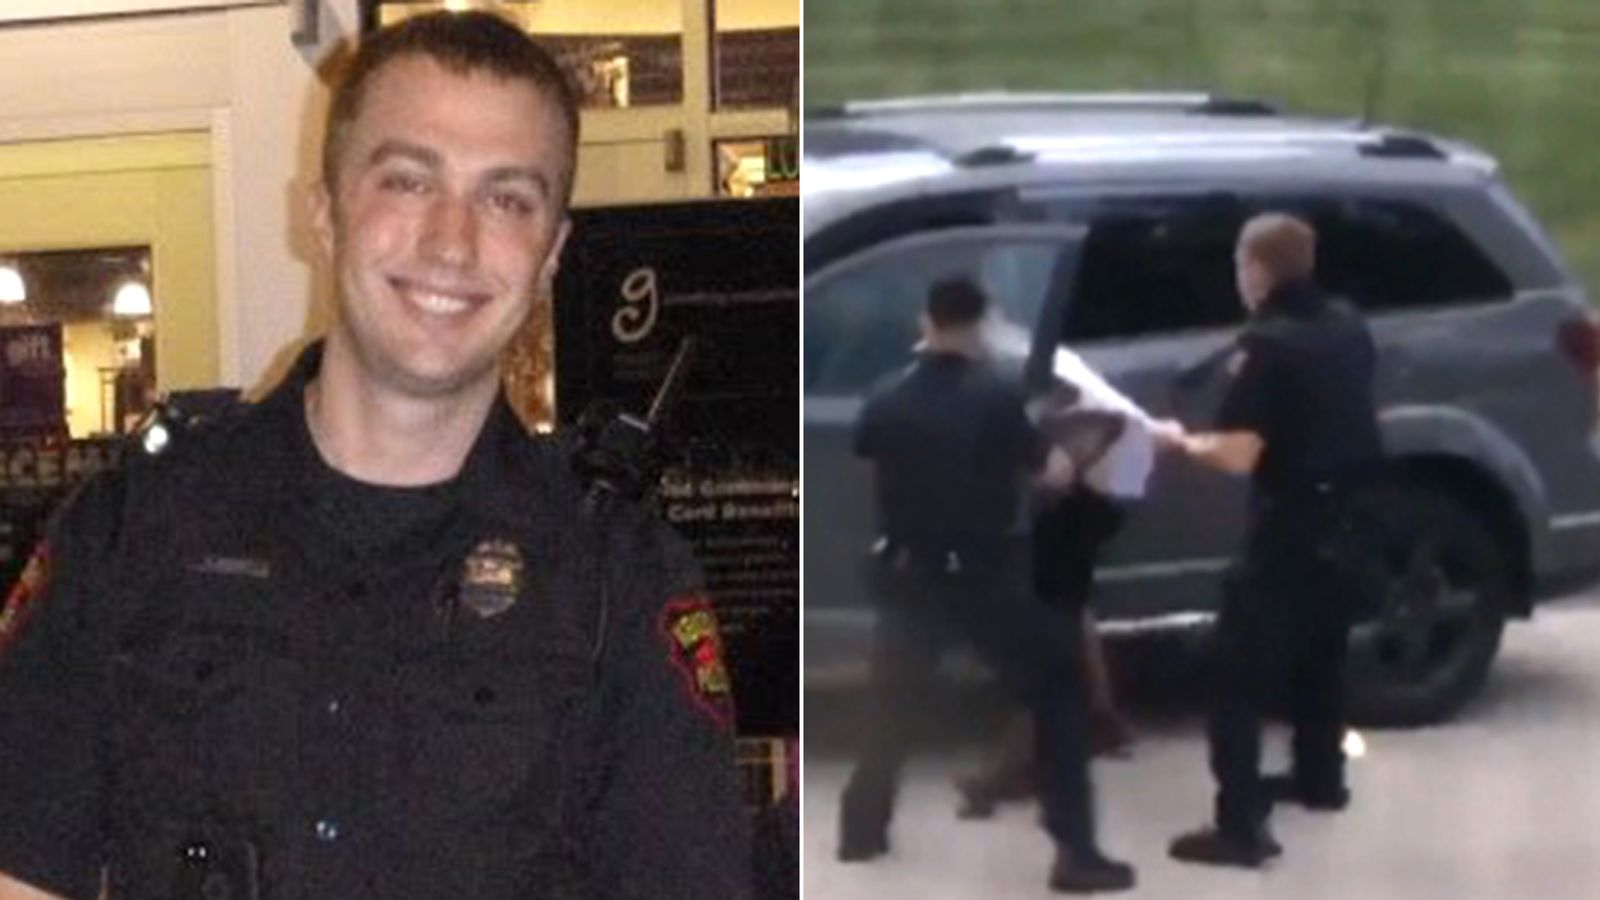 DOJ Will Not Pursue Charges Against Police Officer who Shot Jacob Blake